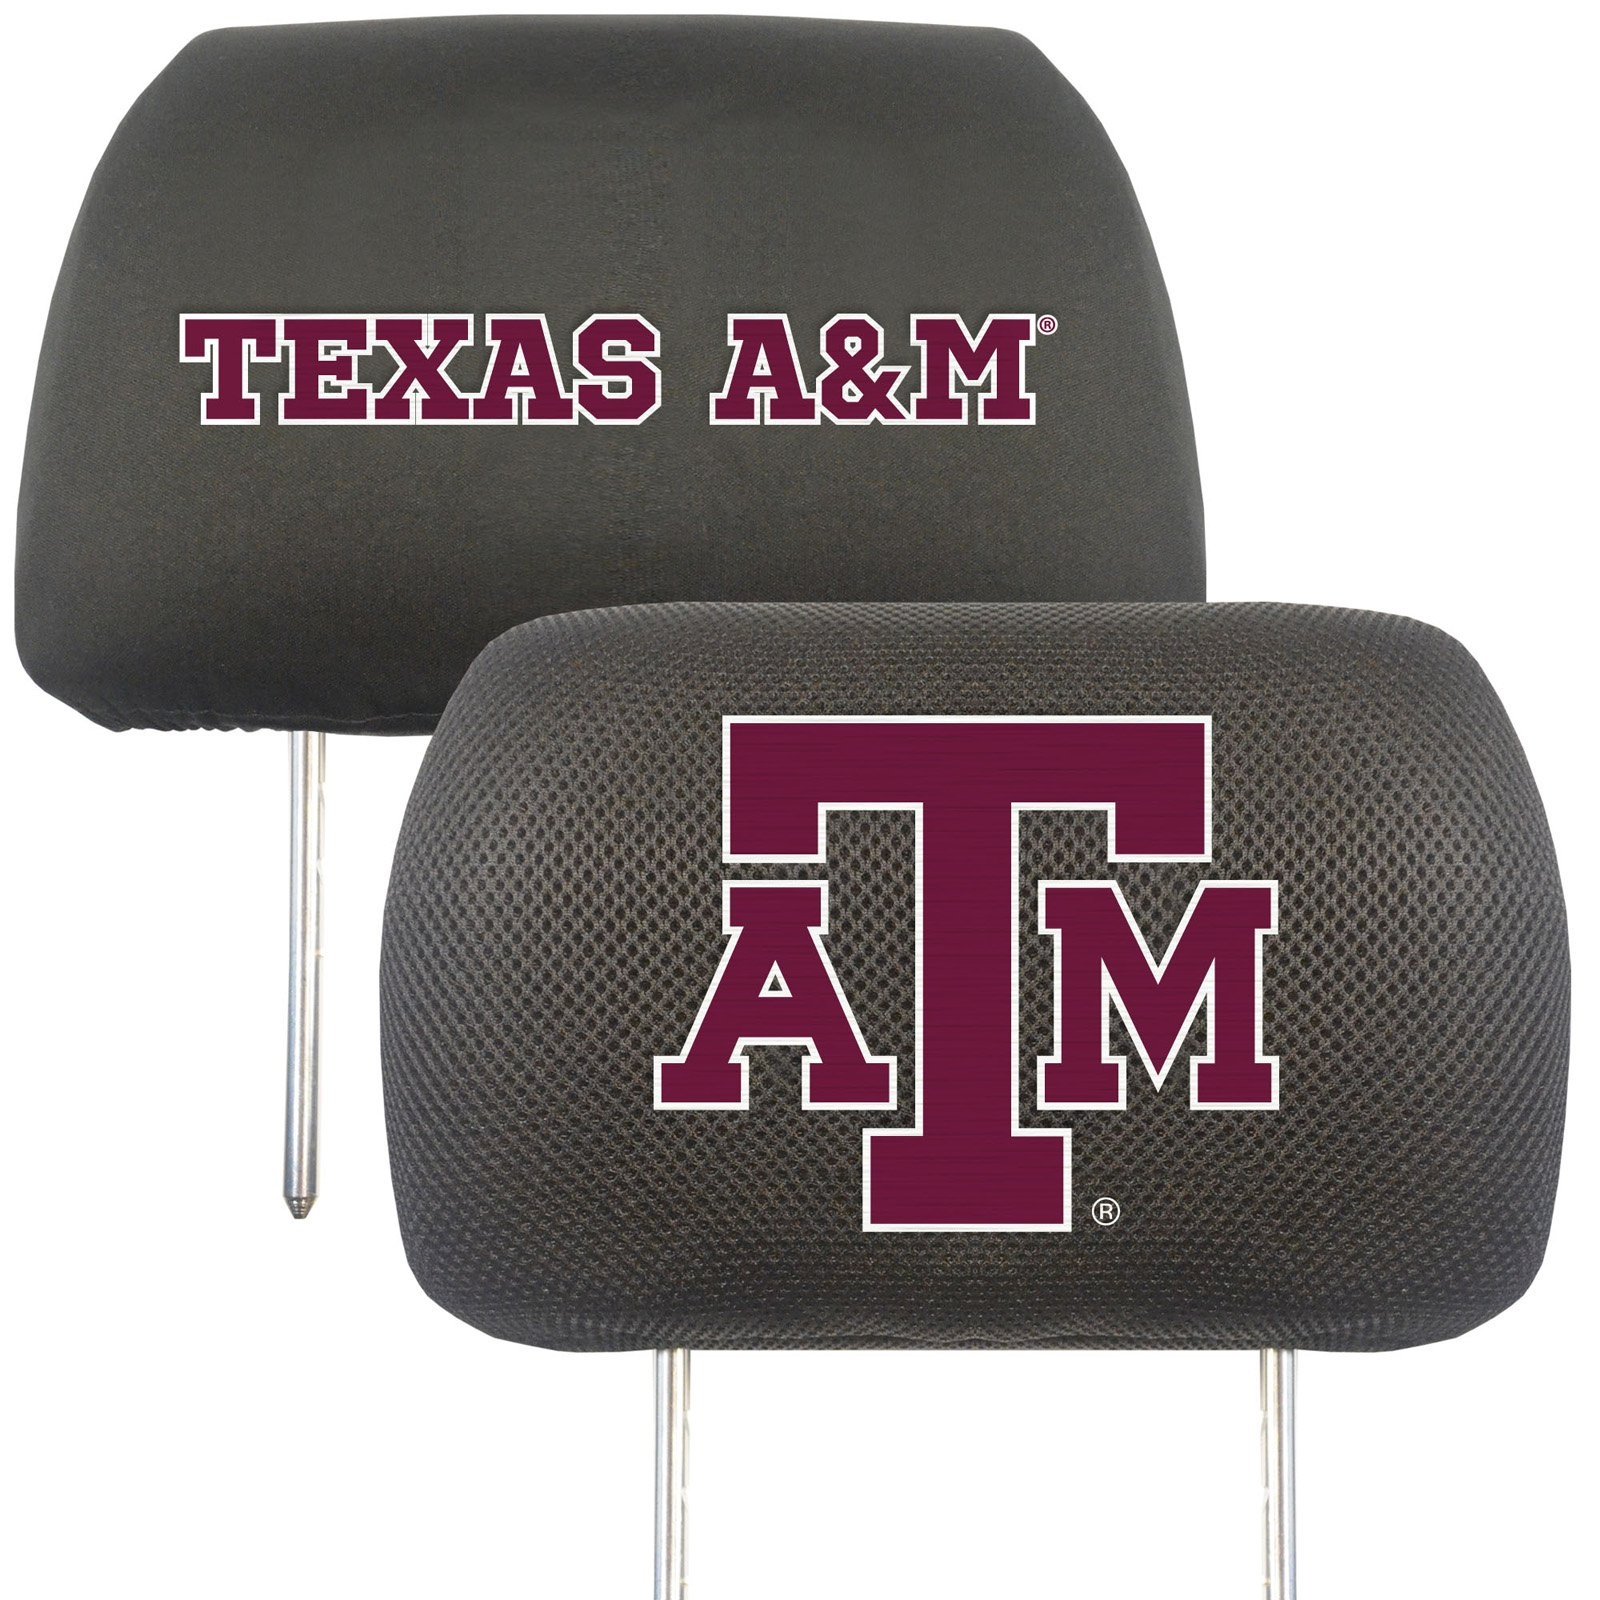 Texas A&M University Headrest Covers